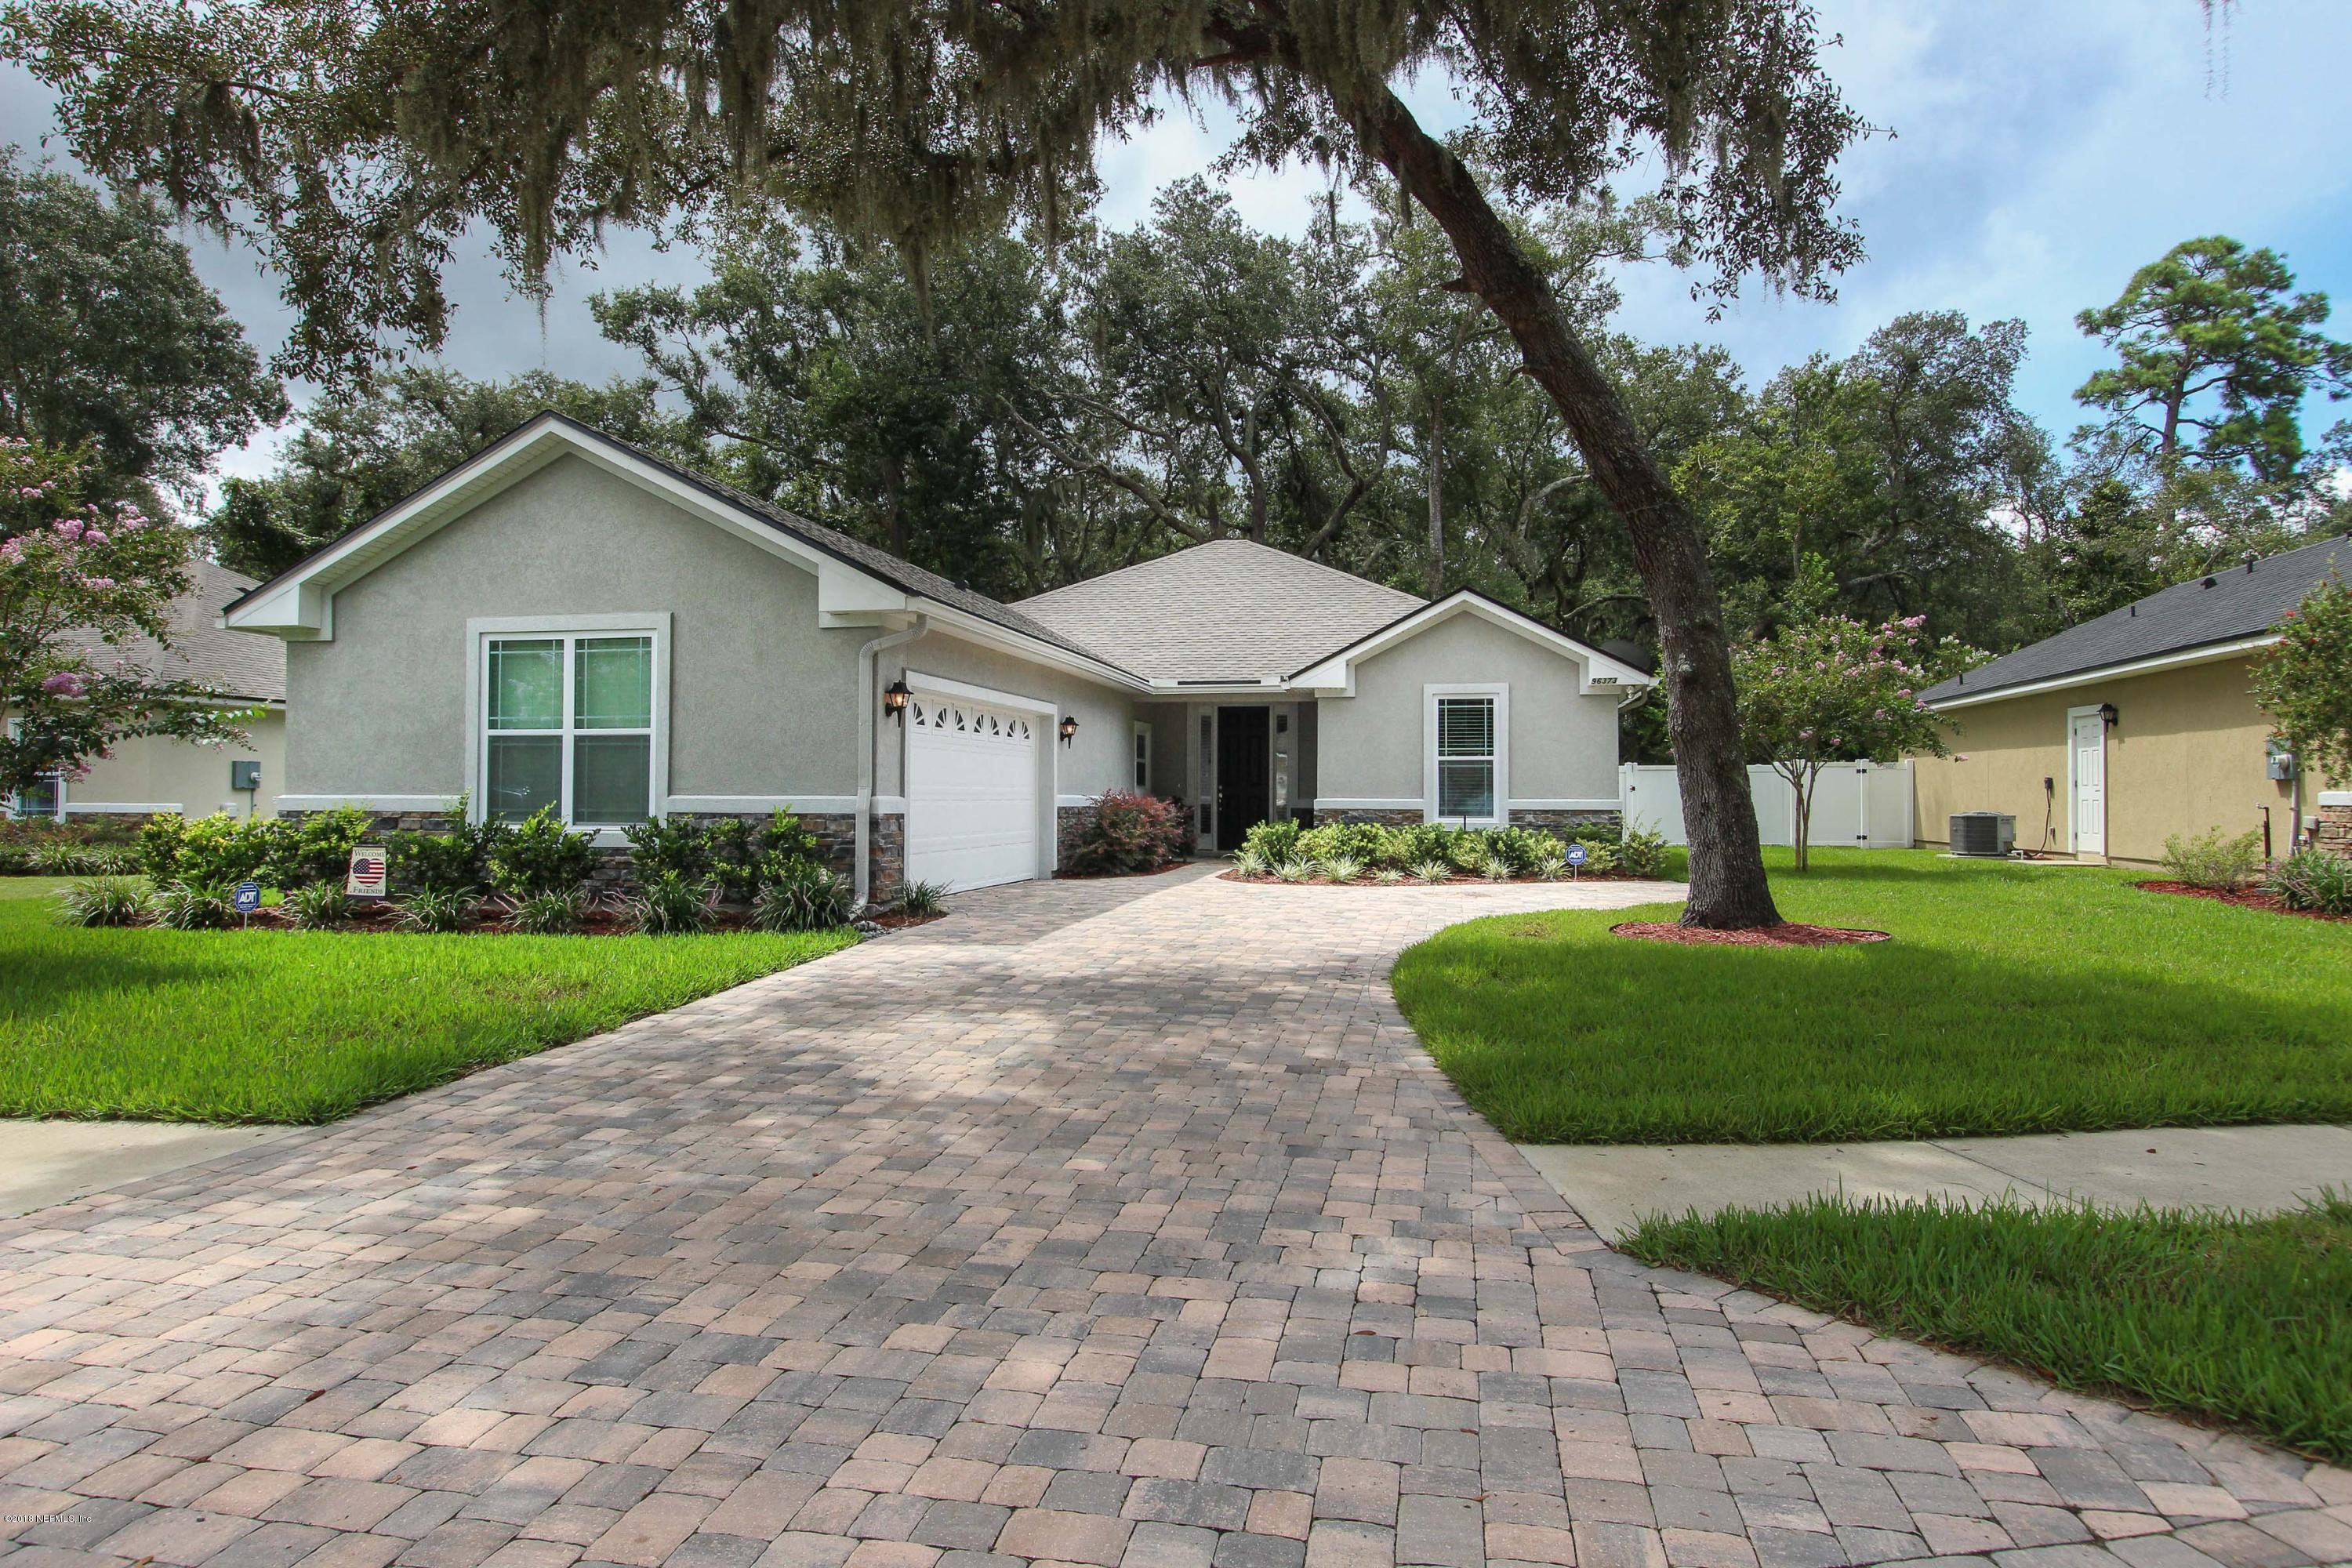 96373 WINDSOR, YULEE, FLORIDA 32097, 3 Bedrooms Bedrooms, ,2 BathroomsBathrooms,Residential - single family,For sale,WINDSOR,955031